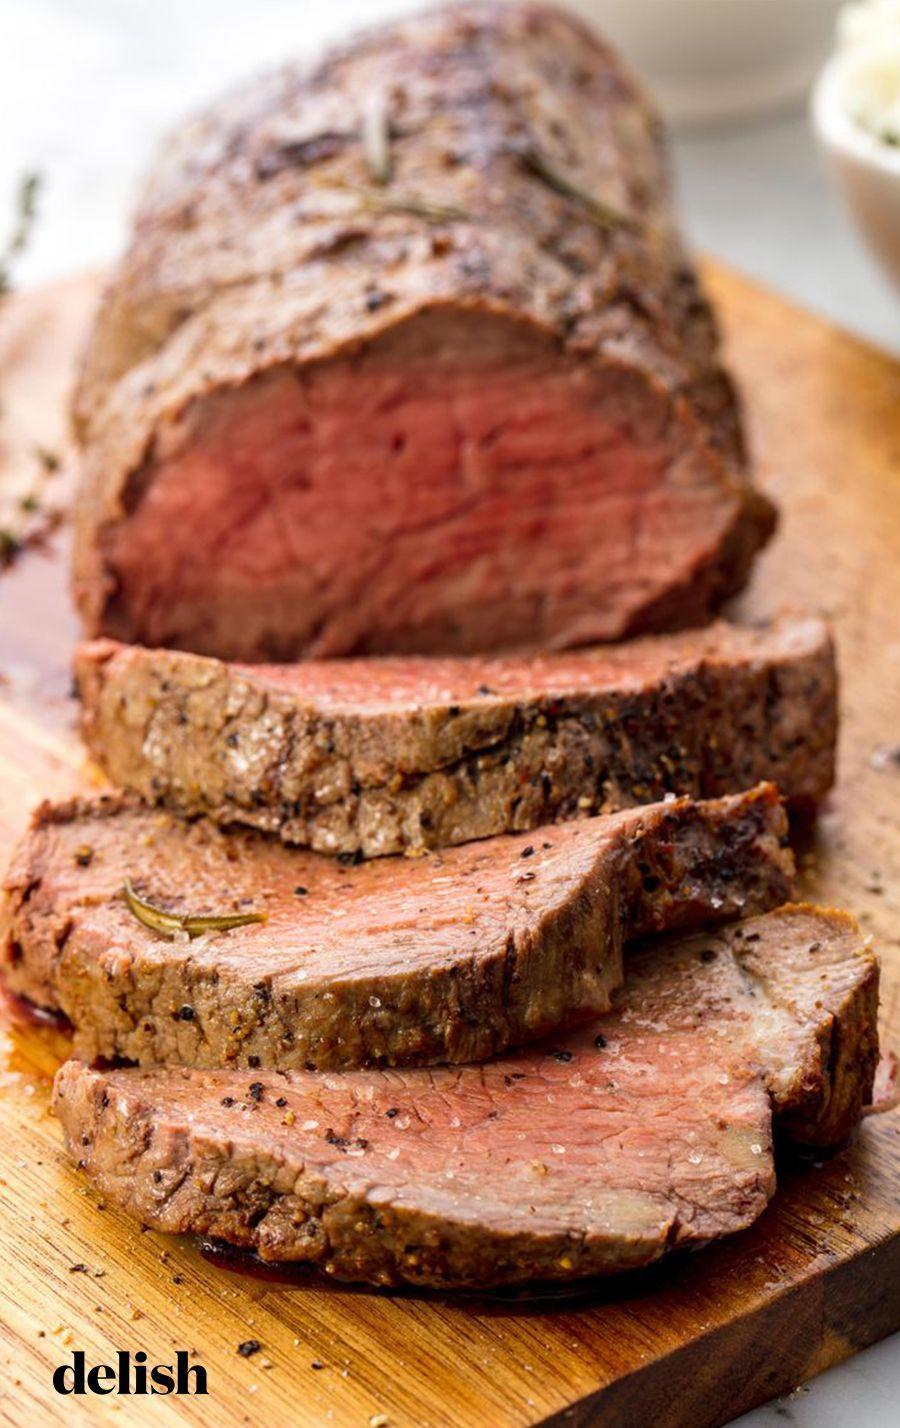 "<p>The buttery, delicious beef tenderloin of your dreams.</p><p>Get the recipe from <a href=""https://www.delish.com/cooking/recipe-ideas/recipes/a55651/best-beef-tenderloin-recipe/"" rel=""nofollow noopener"" target=""_blank"" data-ylk=""slk:Delish"" class=""link rapid-noclick-resp"">Delish</a>.</p>"